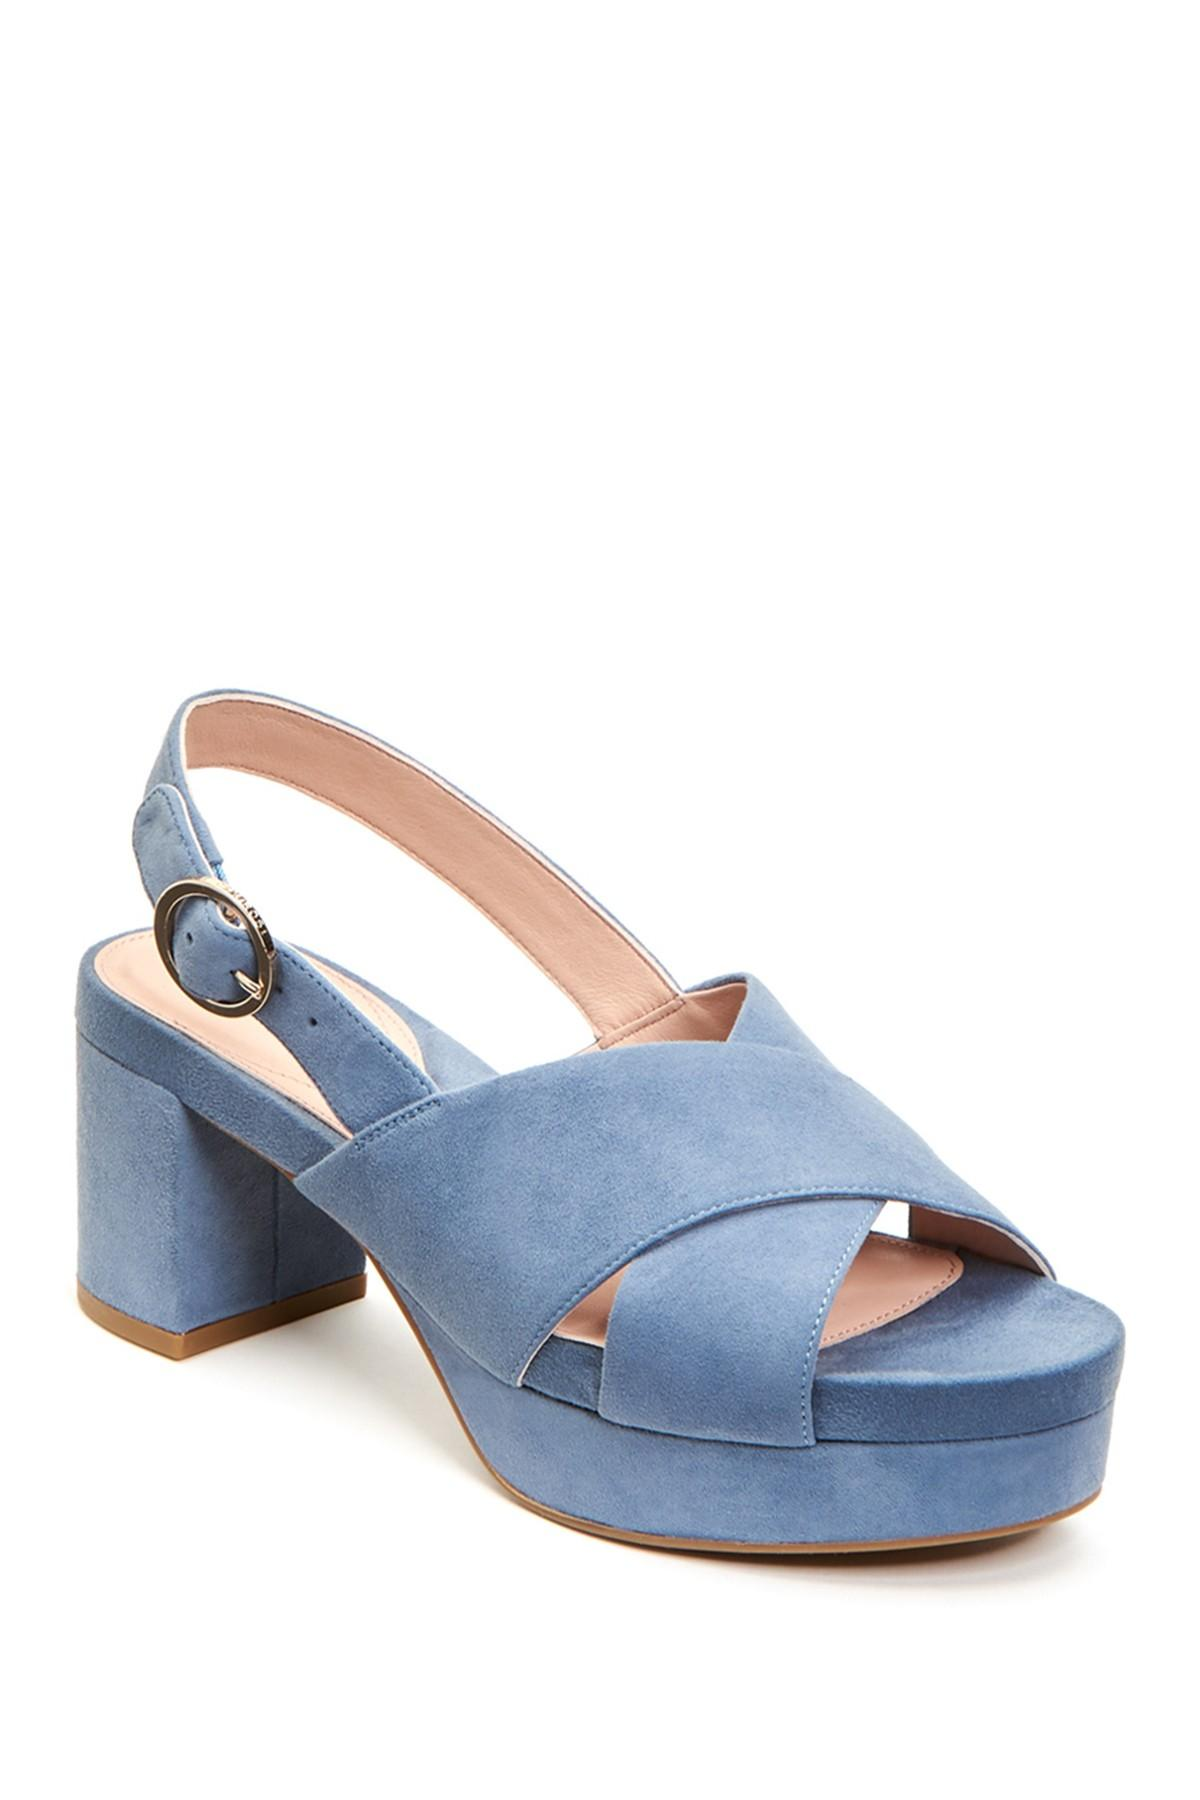 c80e224d7a7 Lyst - Taryn Rose Wanda Block Heel Sandal in Blue - Save 51%